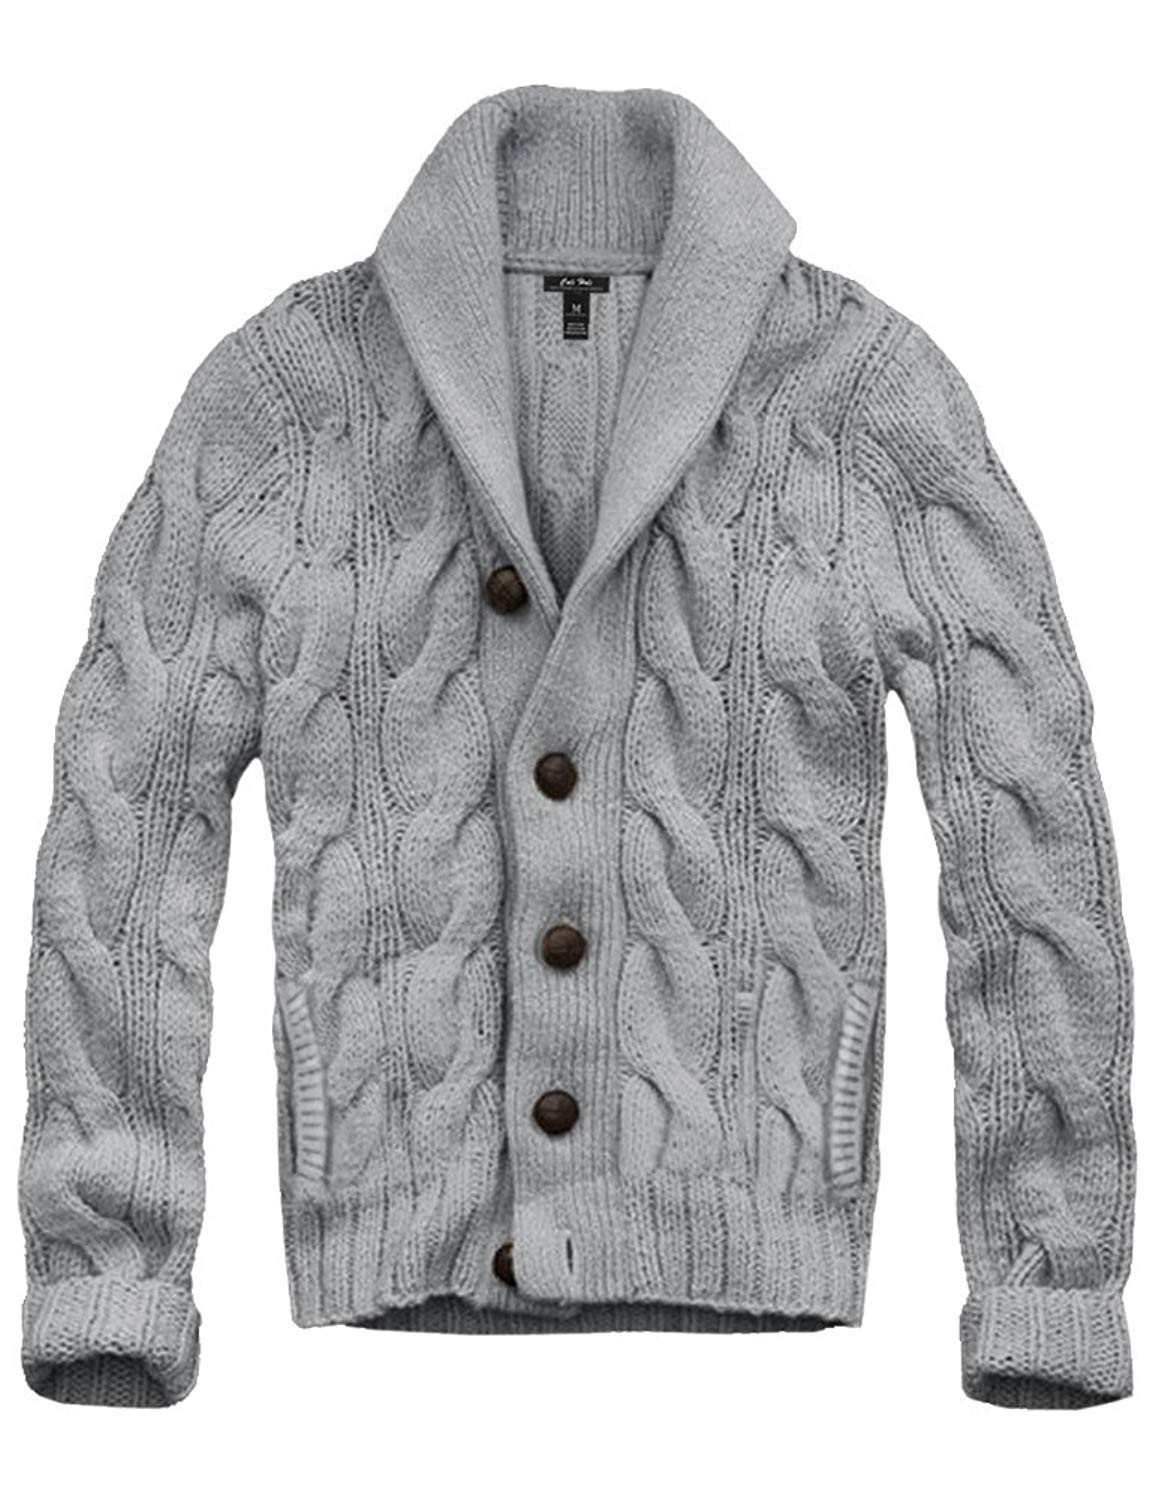 Elegant Mens Cable Knit Cardigan Mens Cable Cardigan Of Top 48 Pics Mens Cable Cardigan